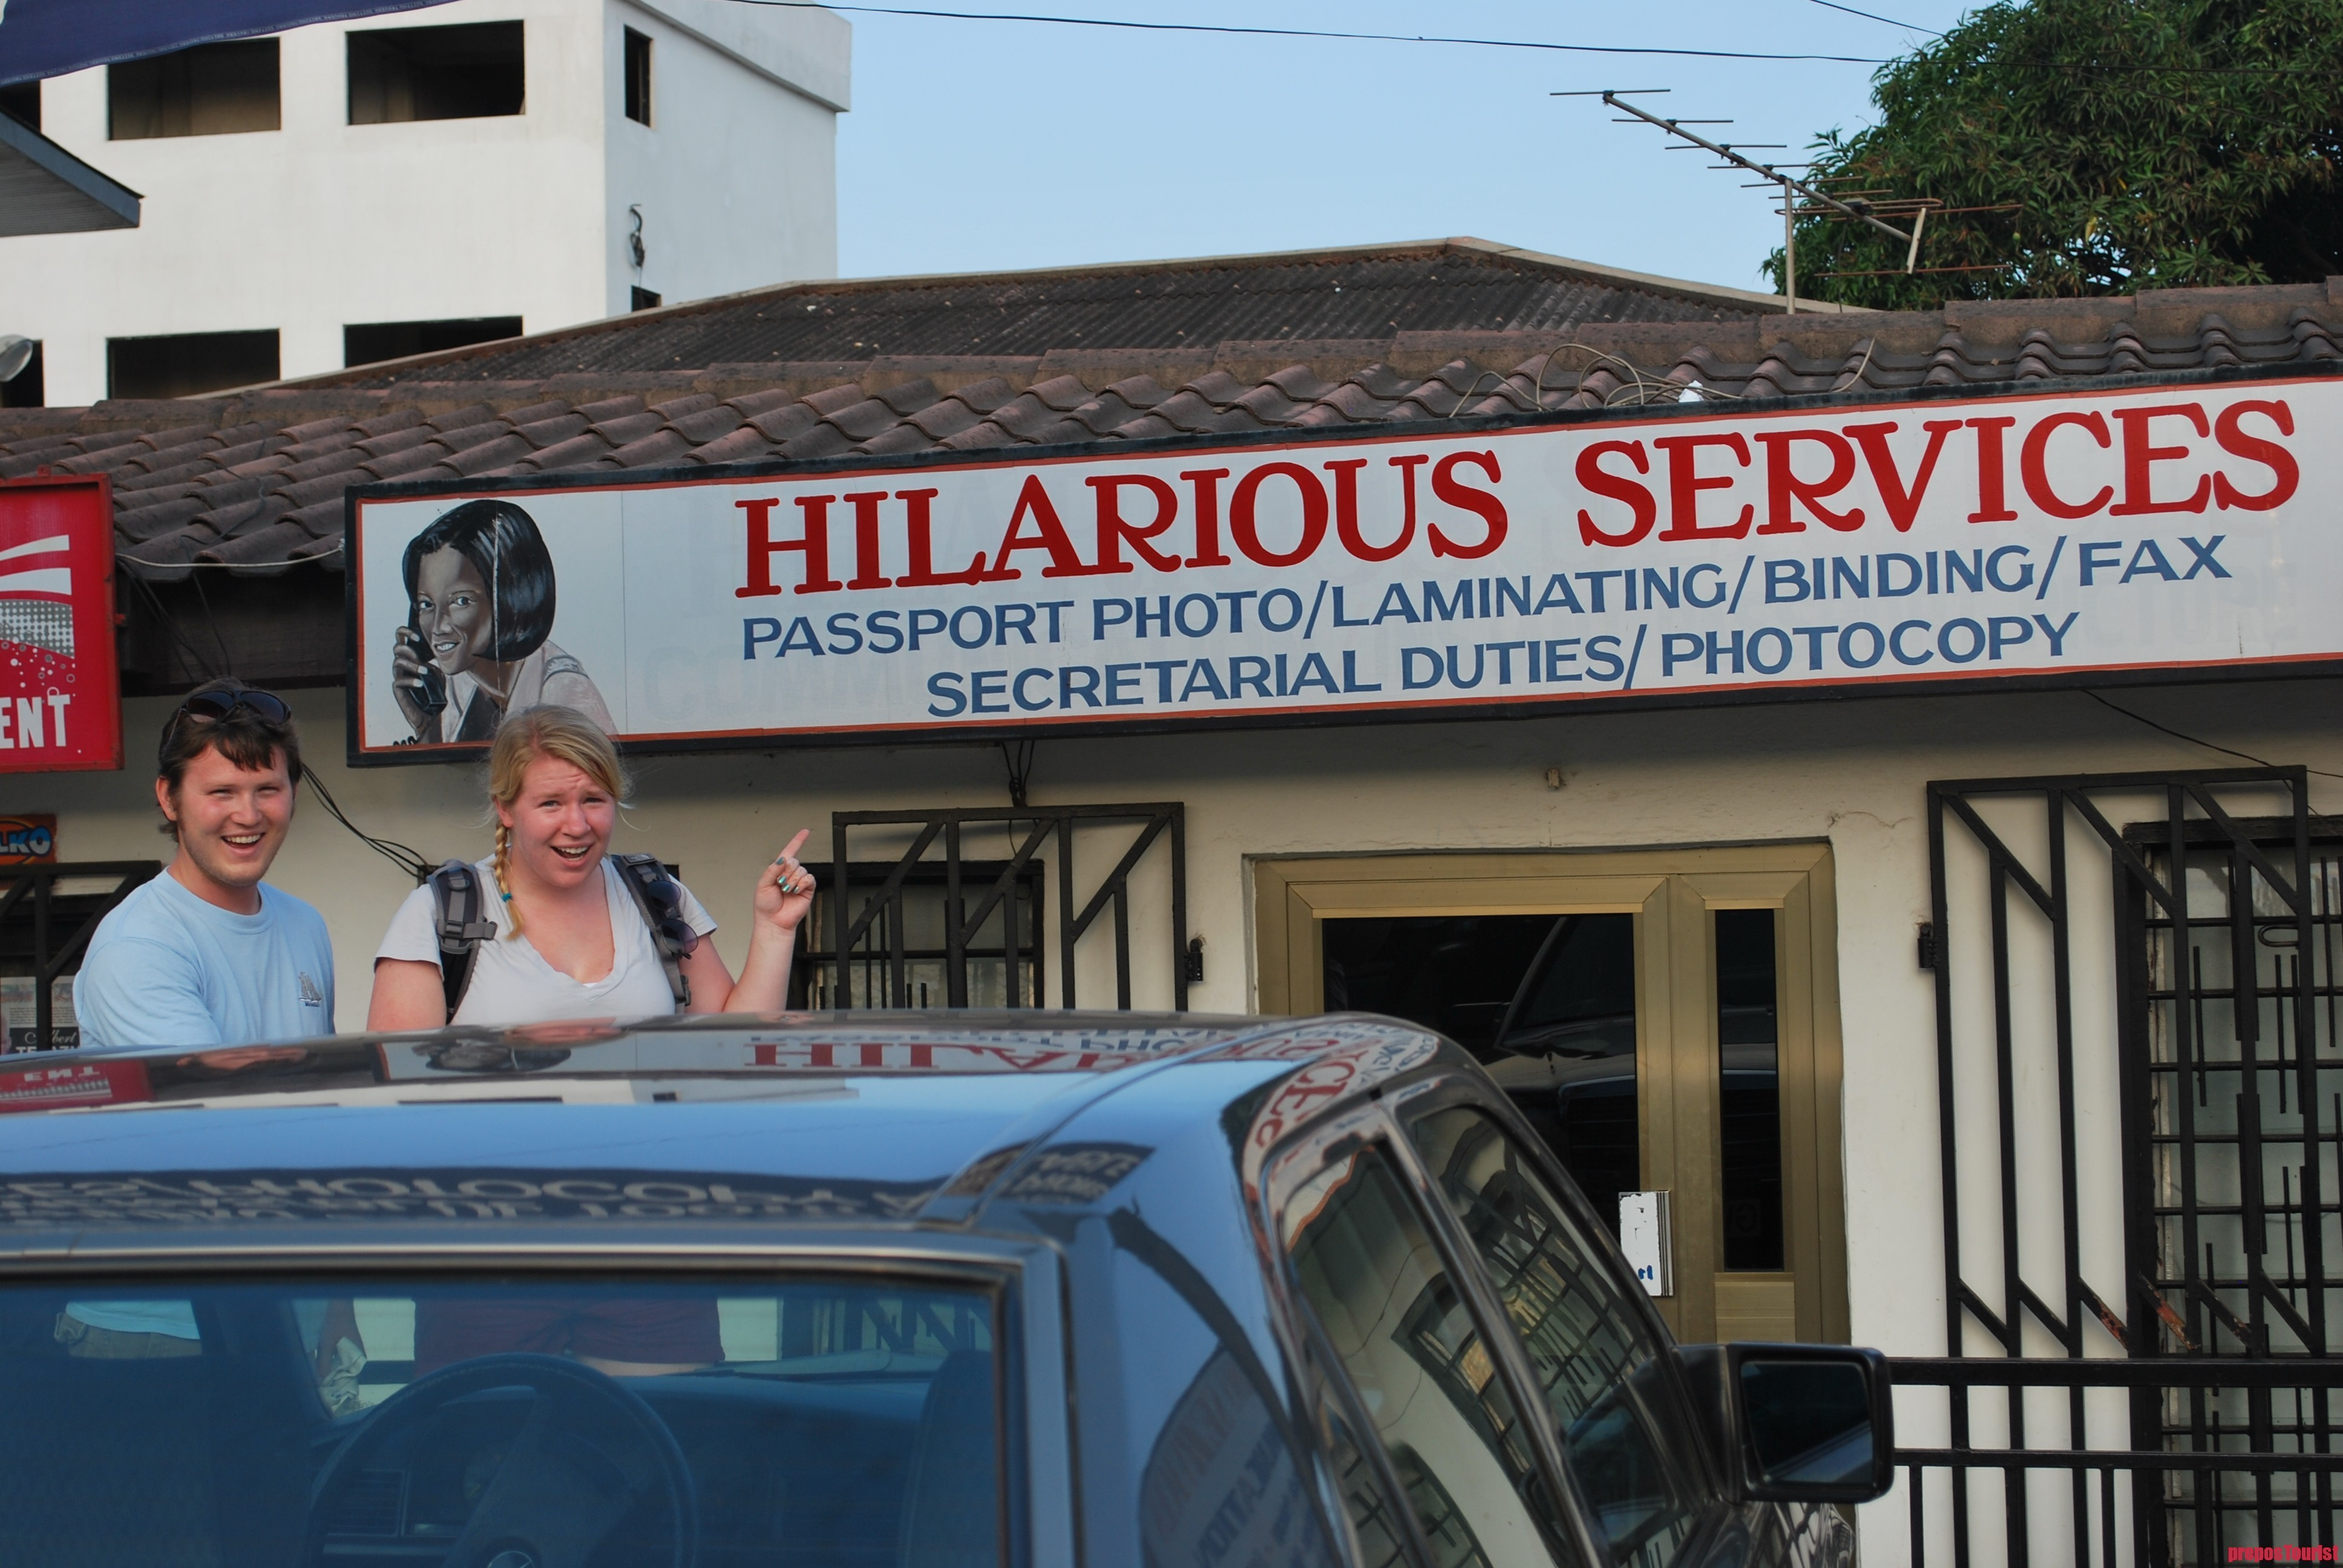 Hilarious Services